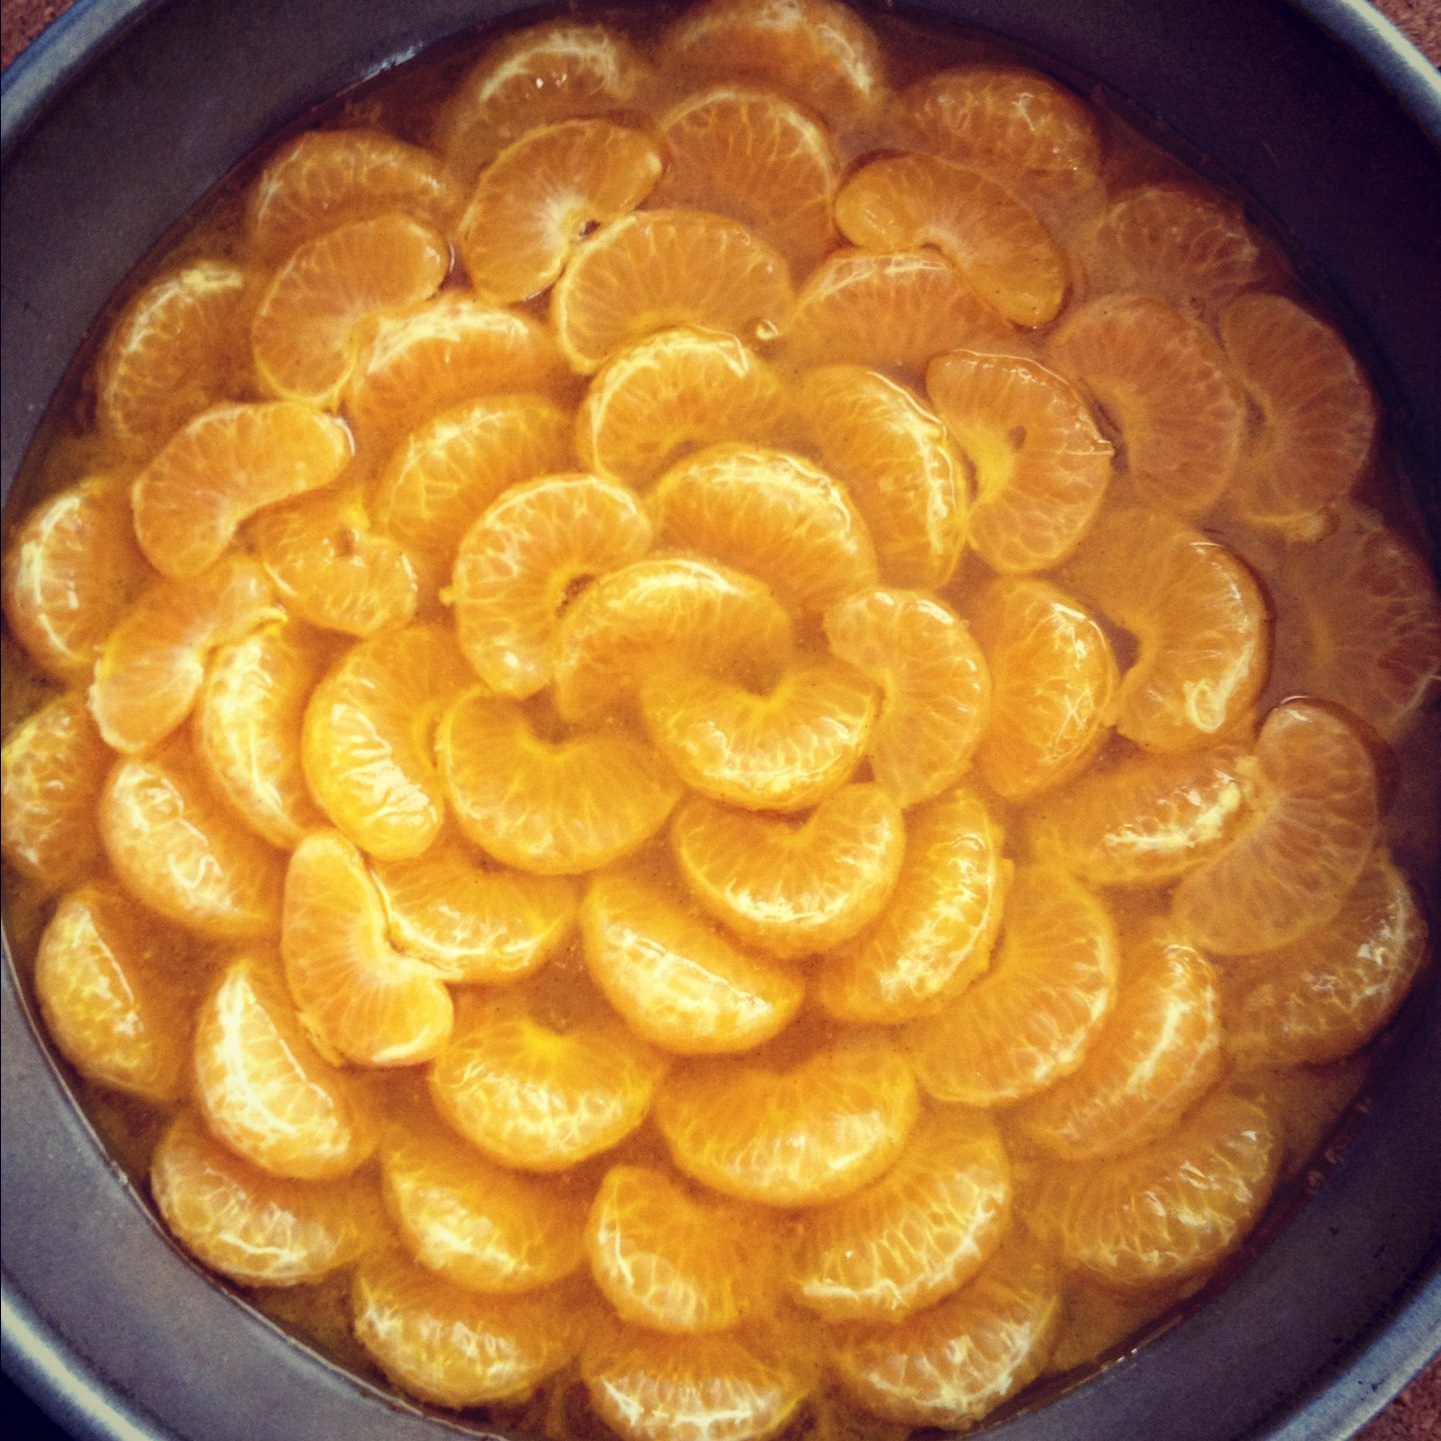 Canned Oranges Cake Recipe